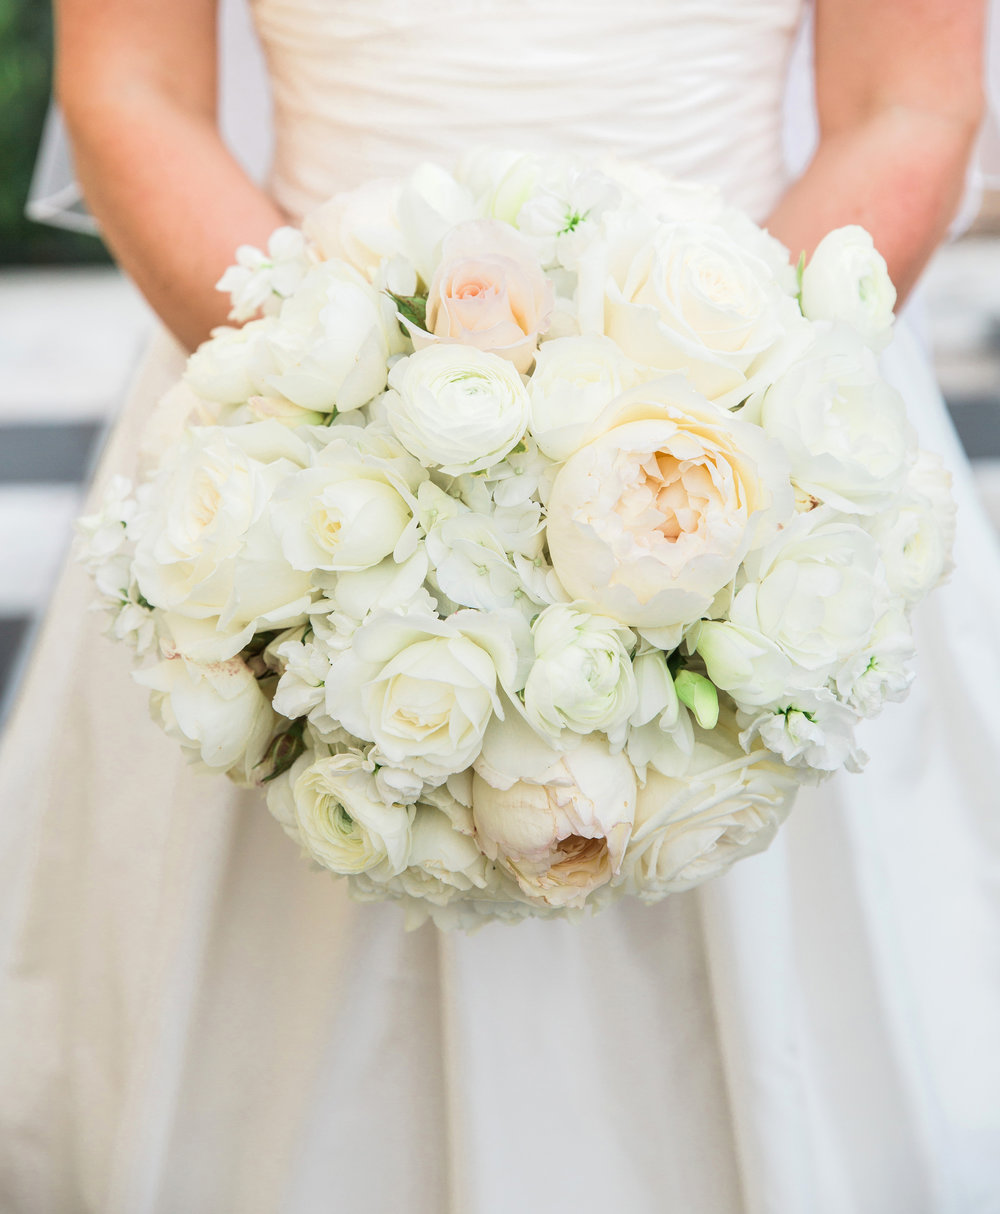 19-Hudson-Nichols-Evergreen-Museum-Maryland-Preppy-Wedding-Classic-White-Flower-Bouquet.jpg